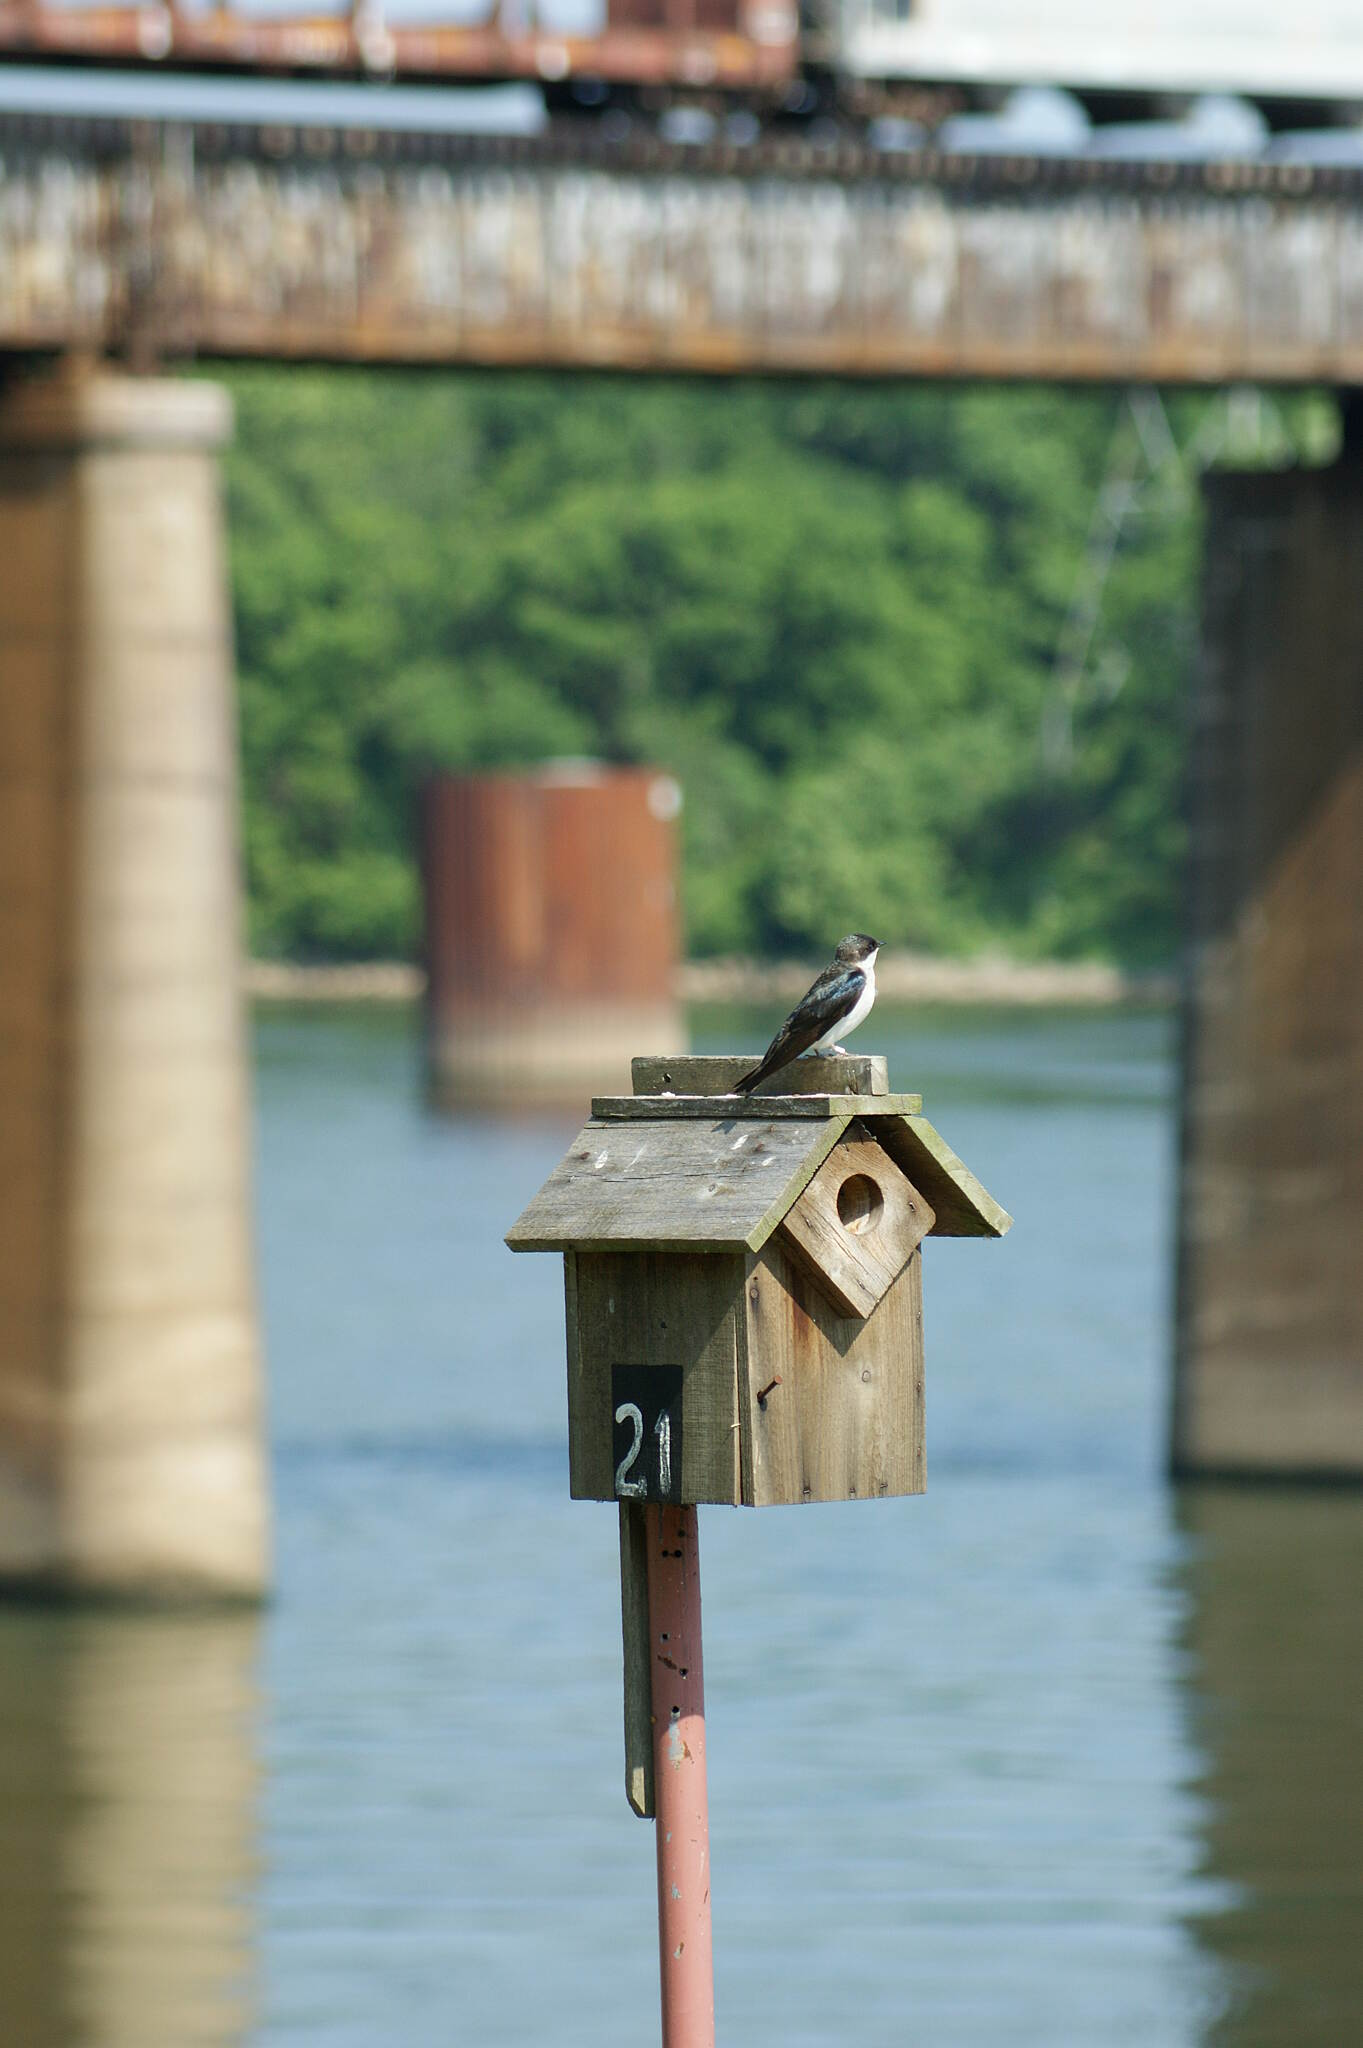 Chattanooga Riverwalk (Tennessee Riverpark) Tree Swallow and Train Cars Tree Swallow and Train Cars, House #21 by the Dam.